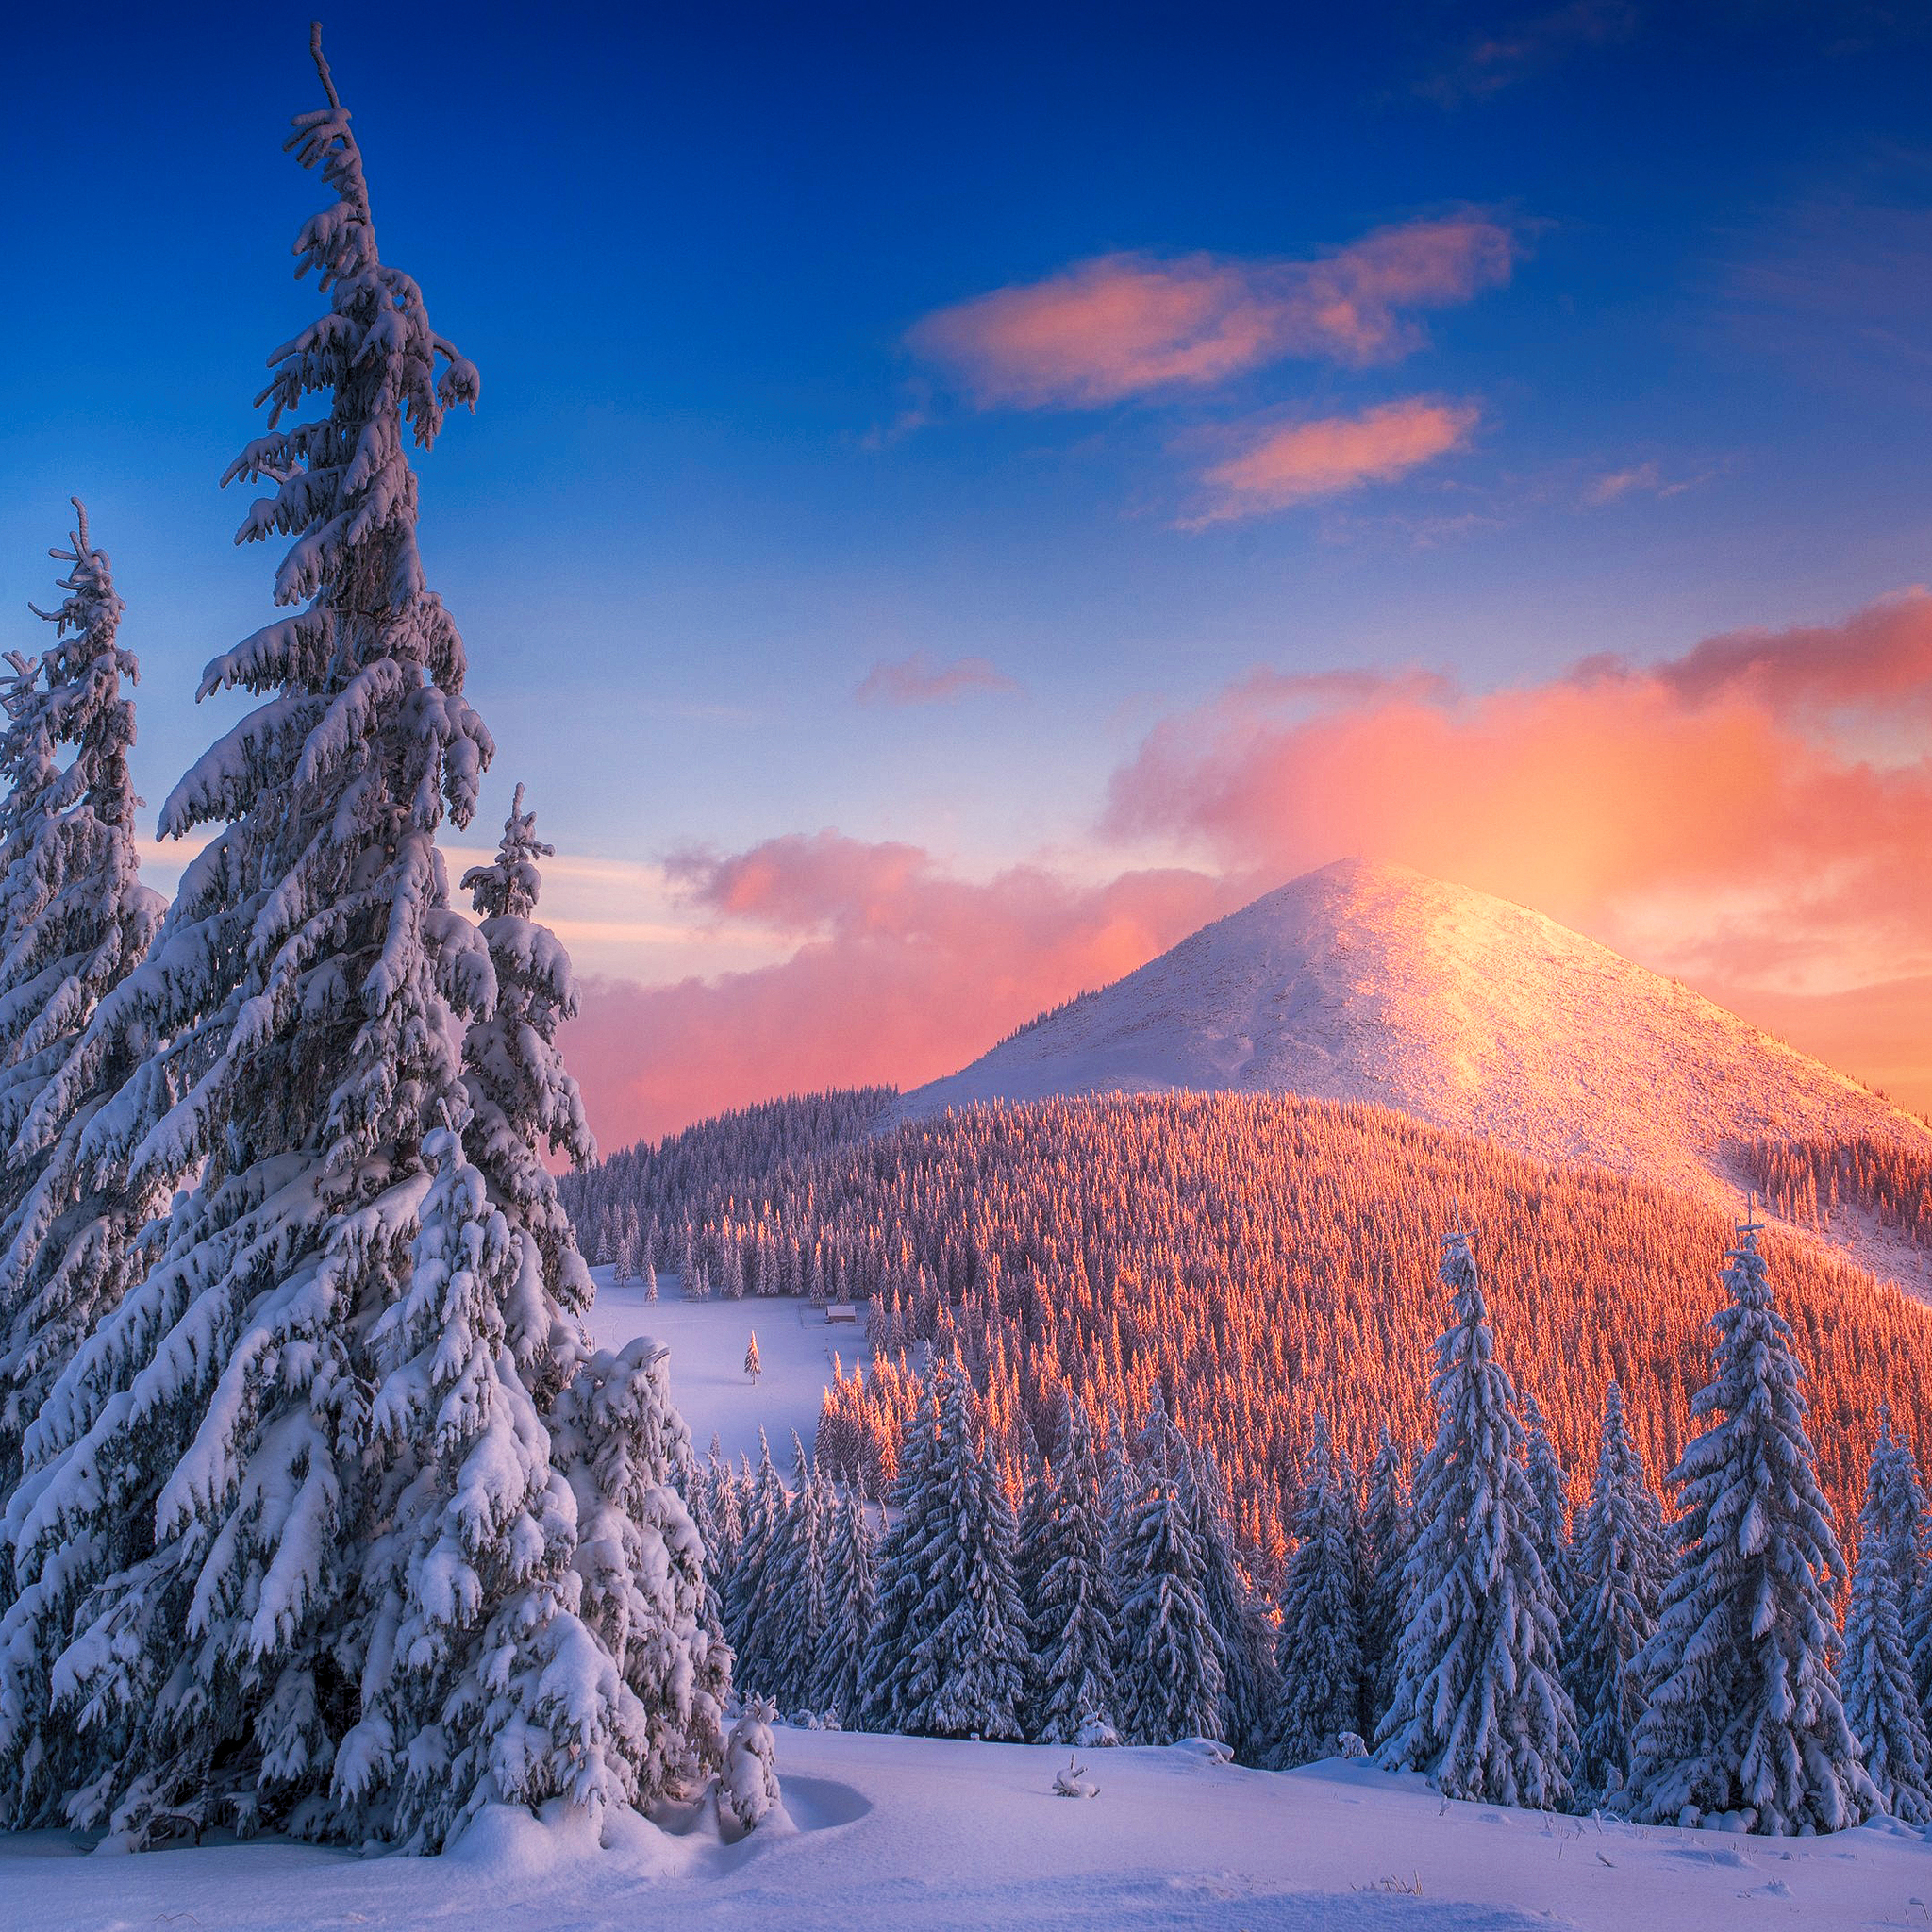 snowy pine trees and mountains 4k